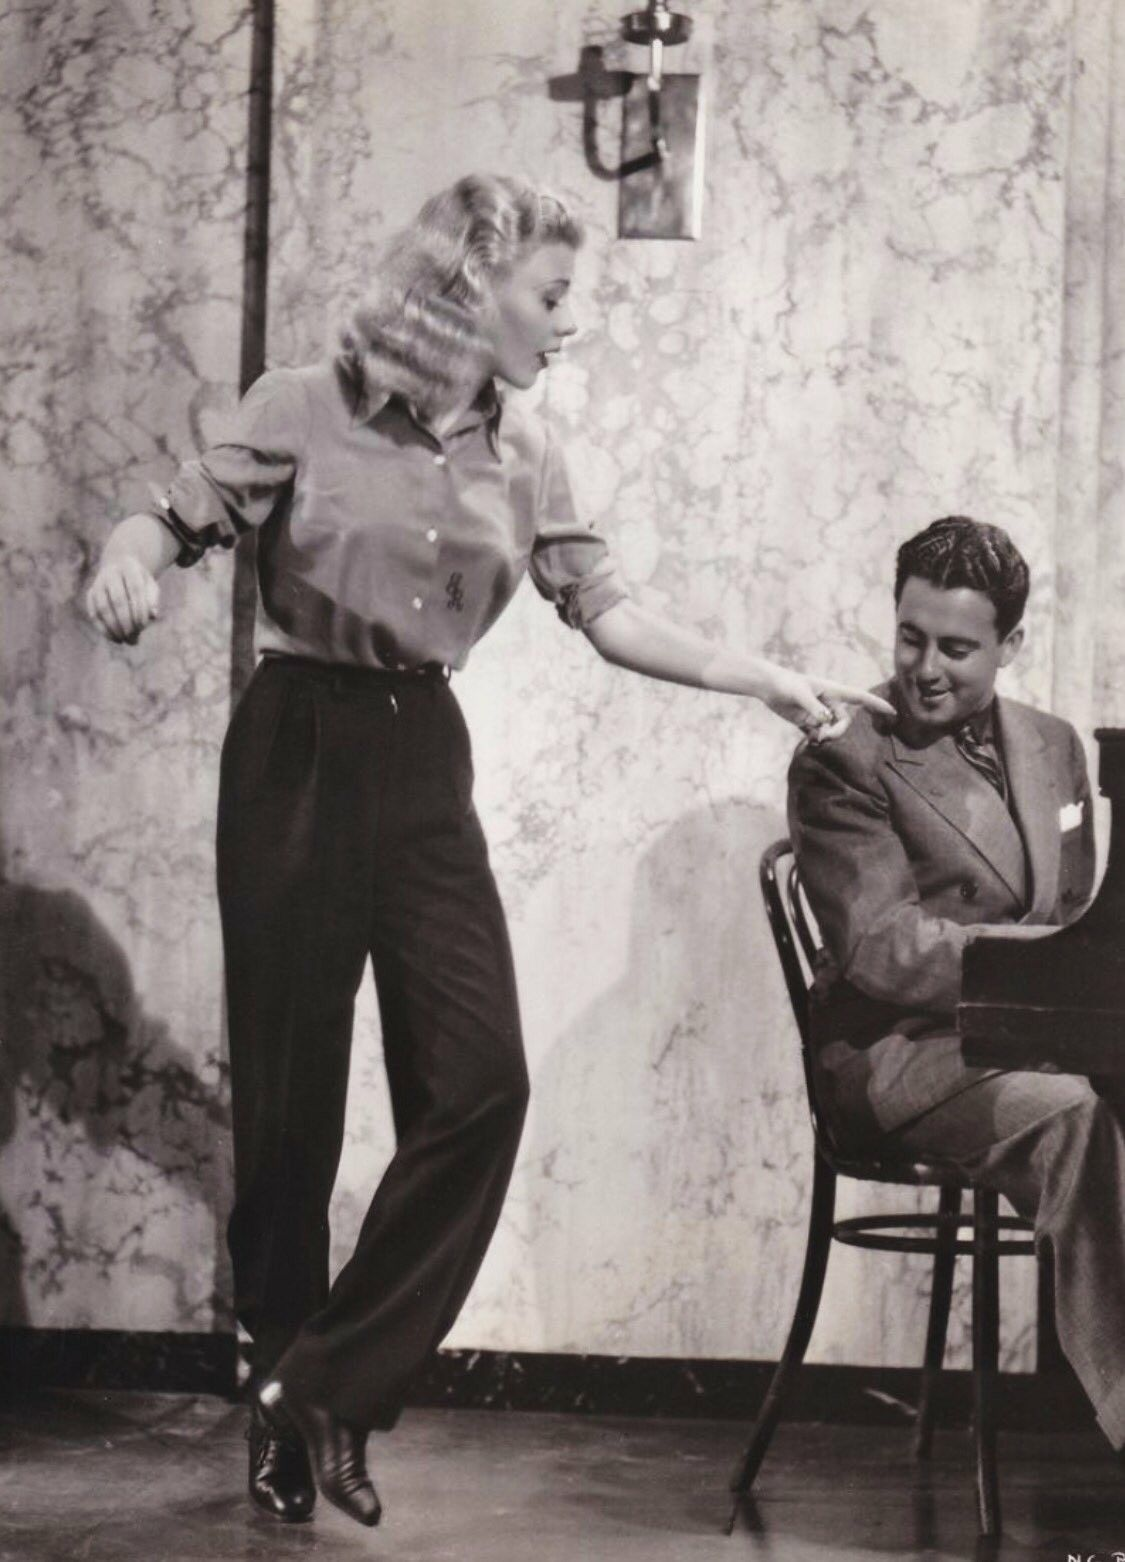 Ginger Rogers rehearsing for Swing Time movie